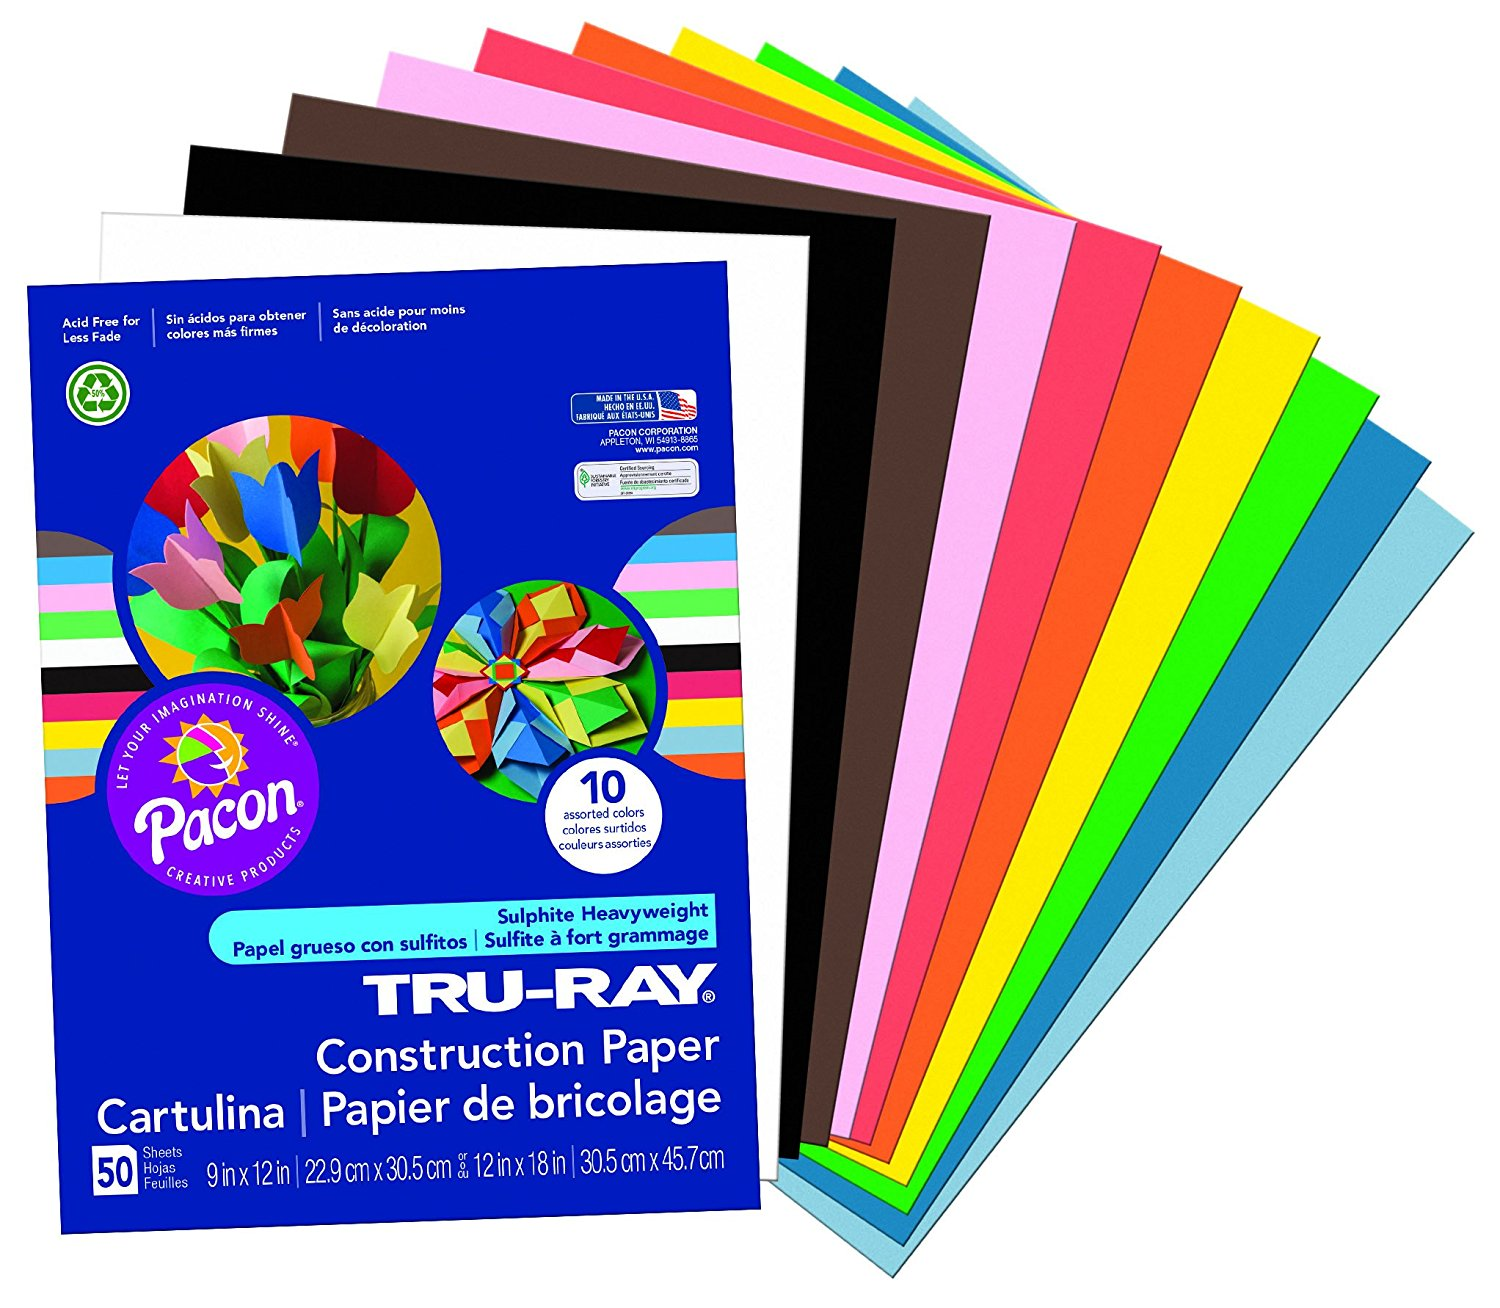 814SaUa0aDL. SL1500  - Pacon Tru-Ray Construction Paper, 9-Inches by 12-Inches, 50-Count, Assorted (103031)